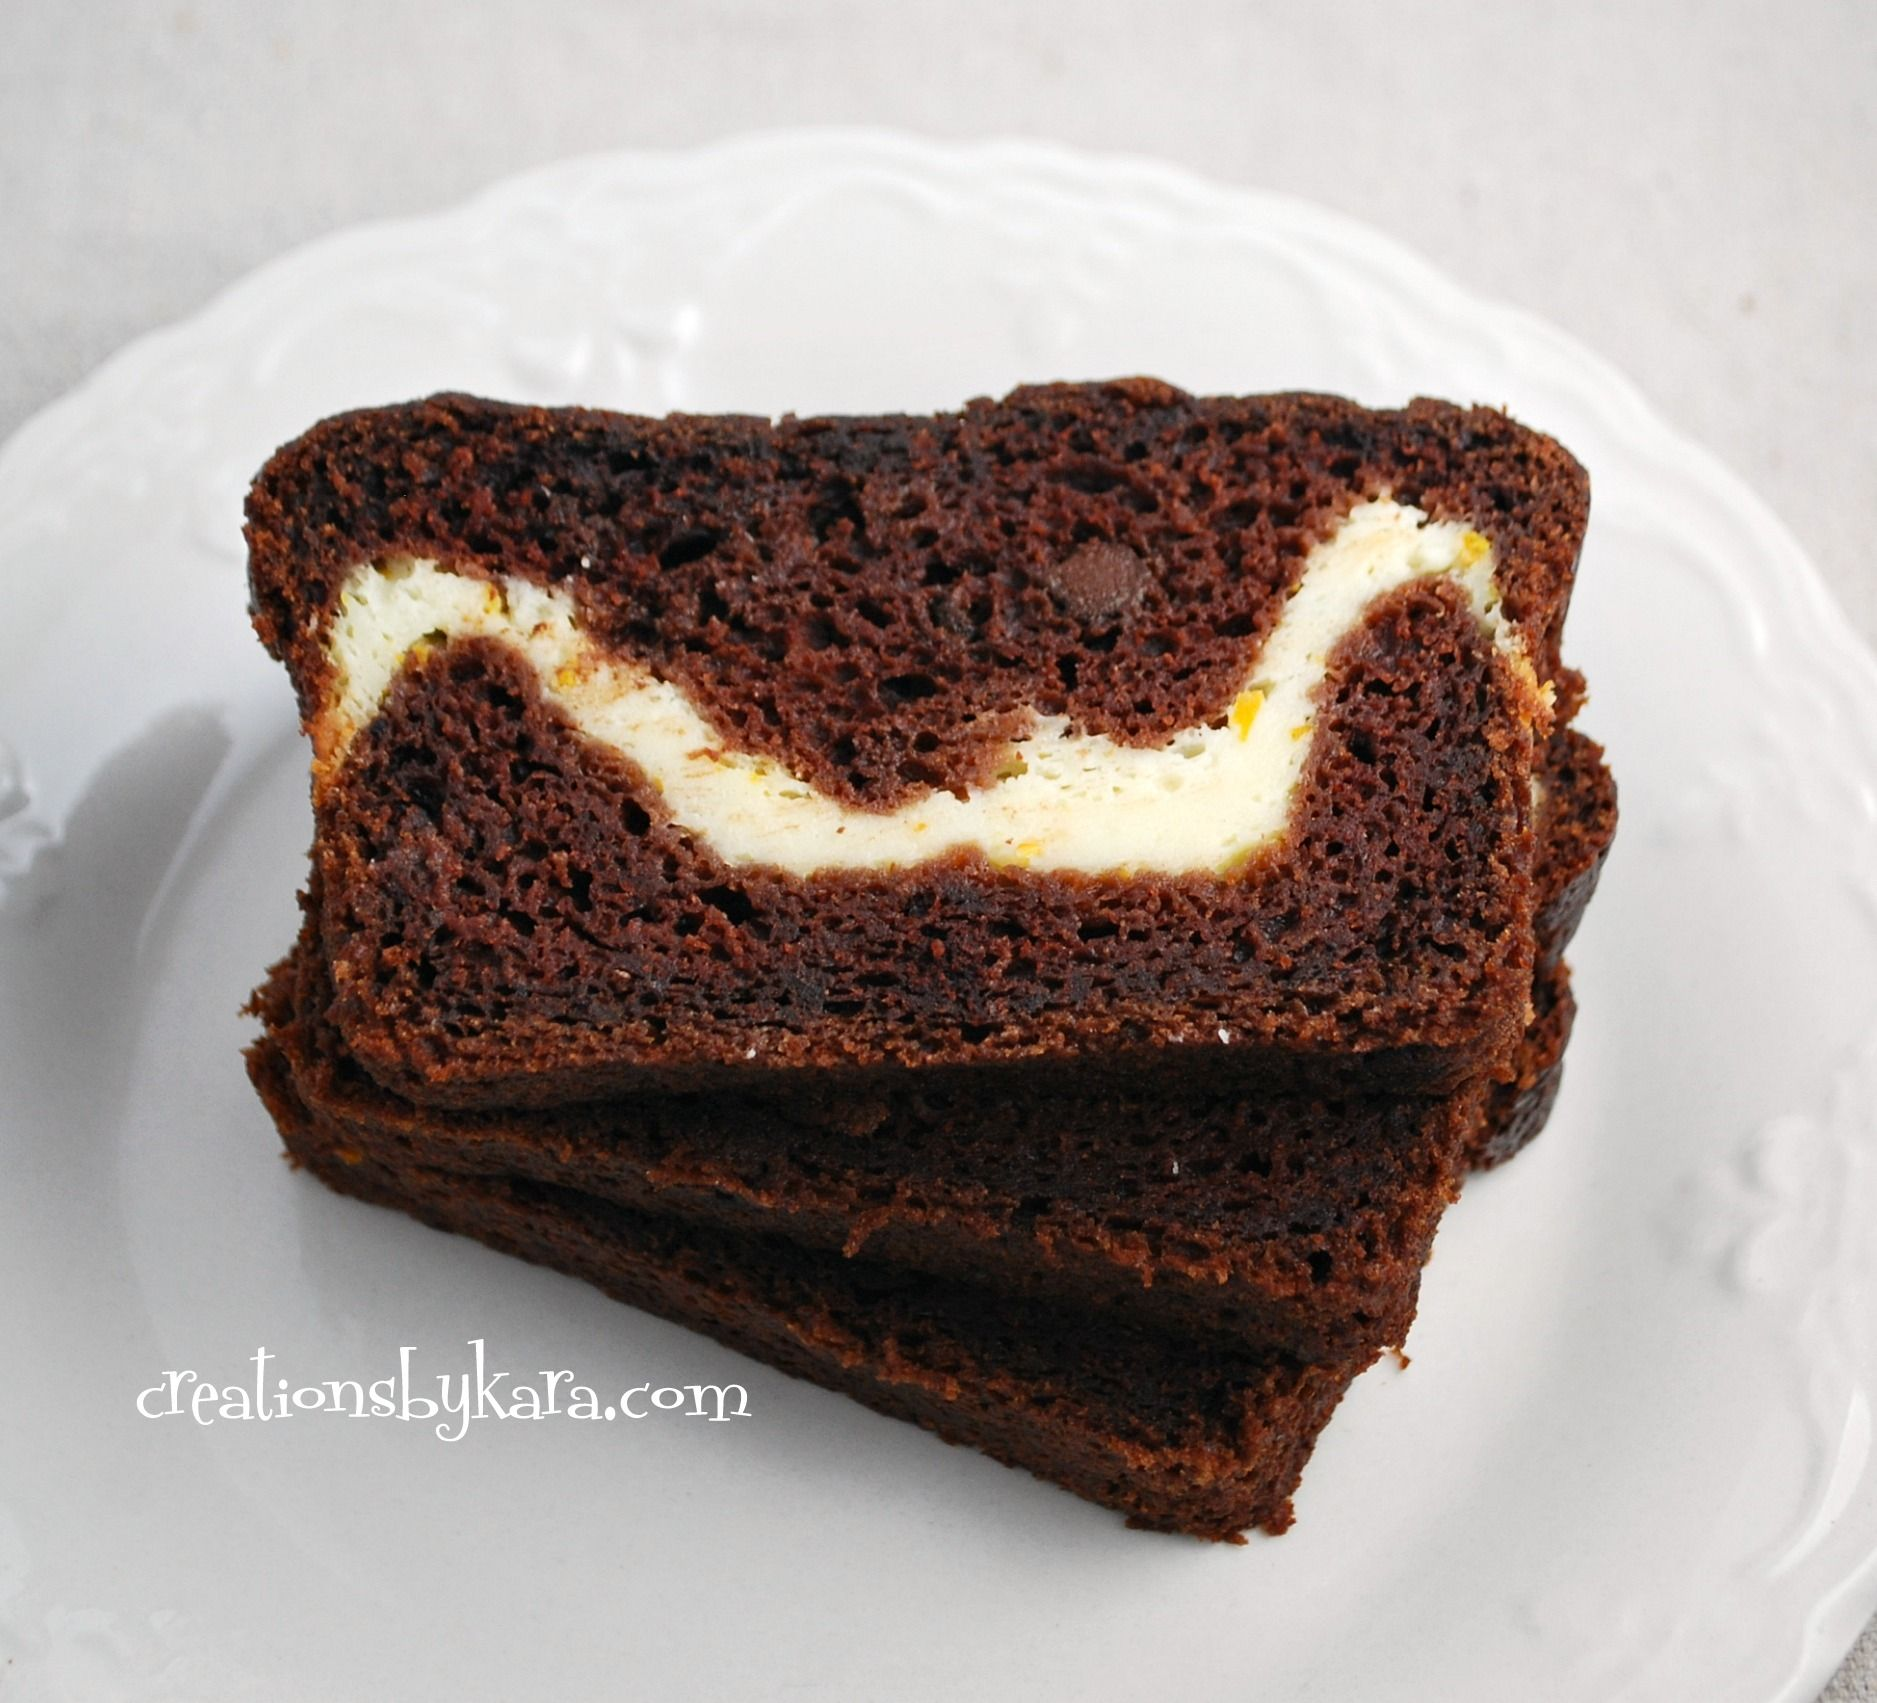 Chocolate Zucchini Bread with Cream Cheese Filling #zucchini